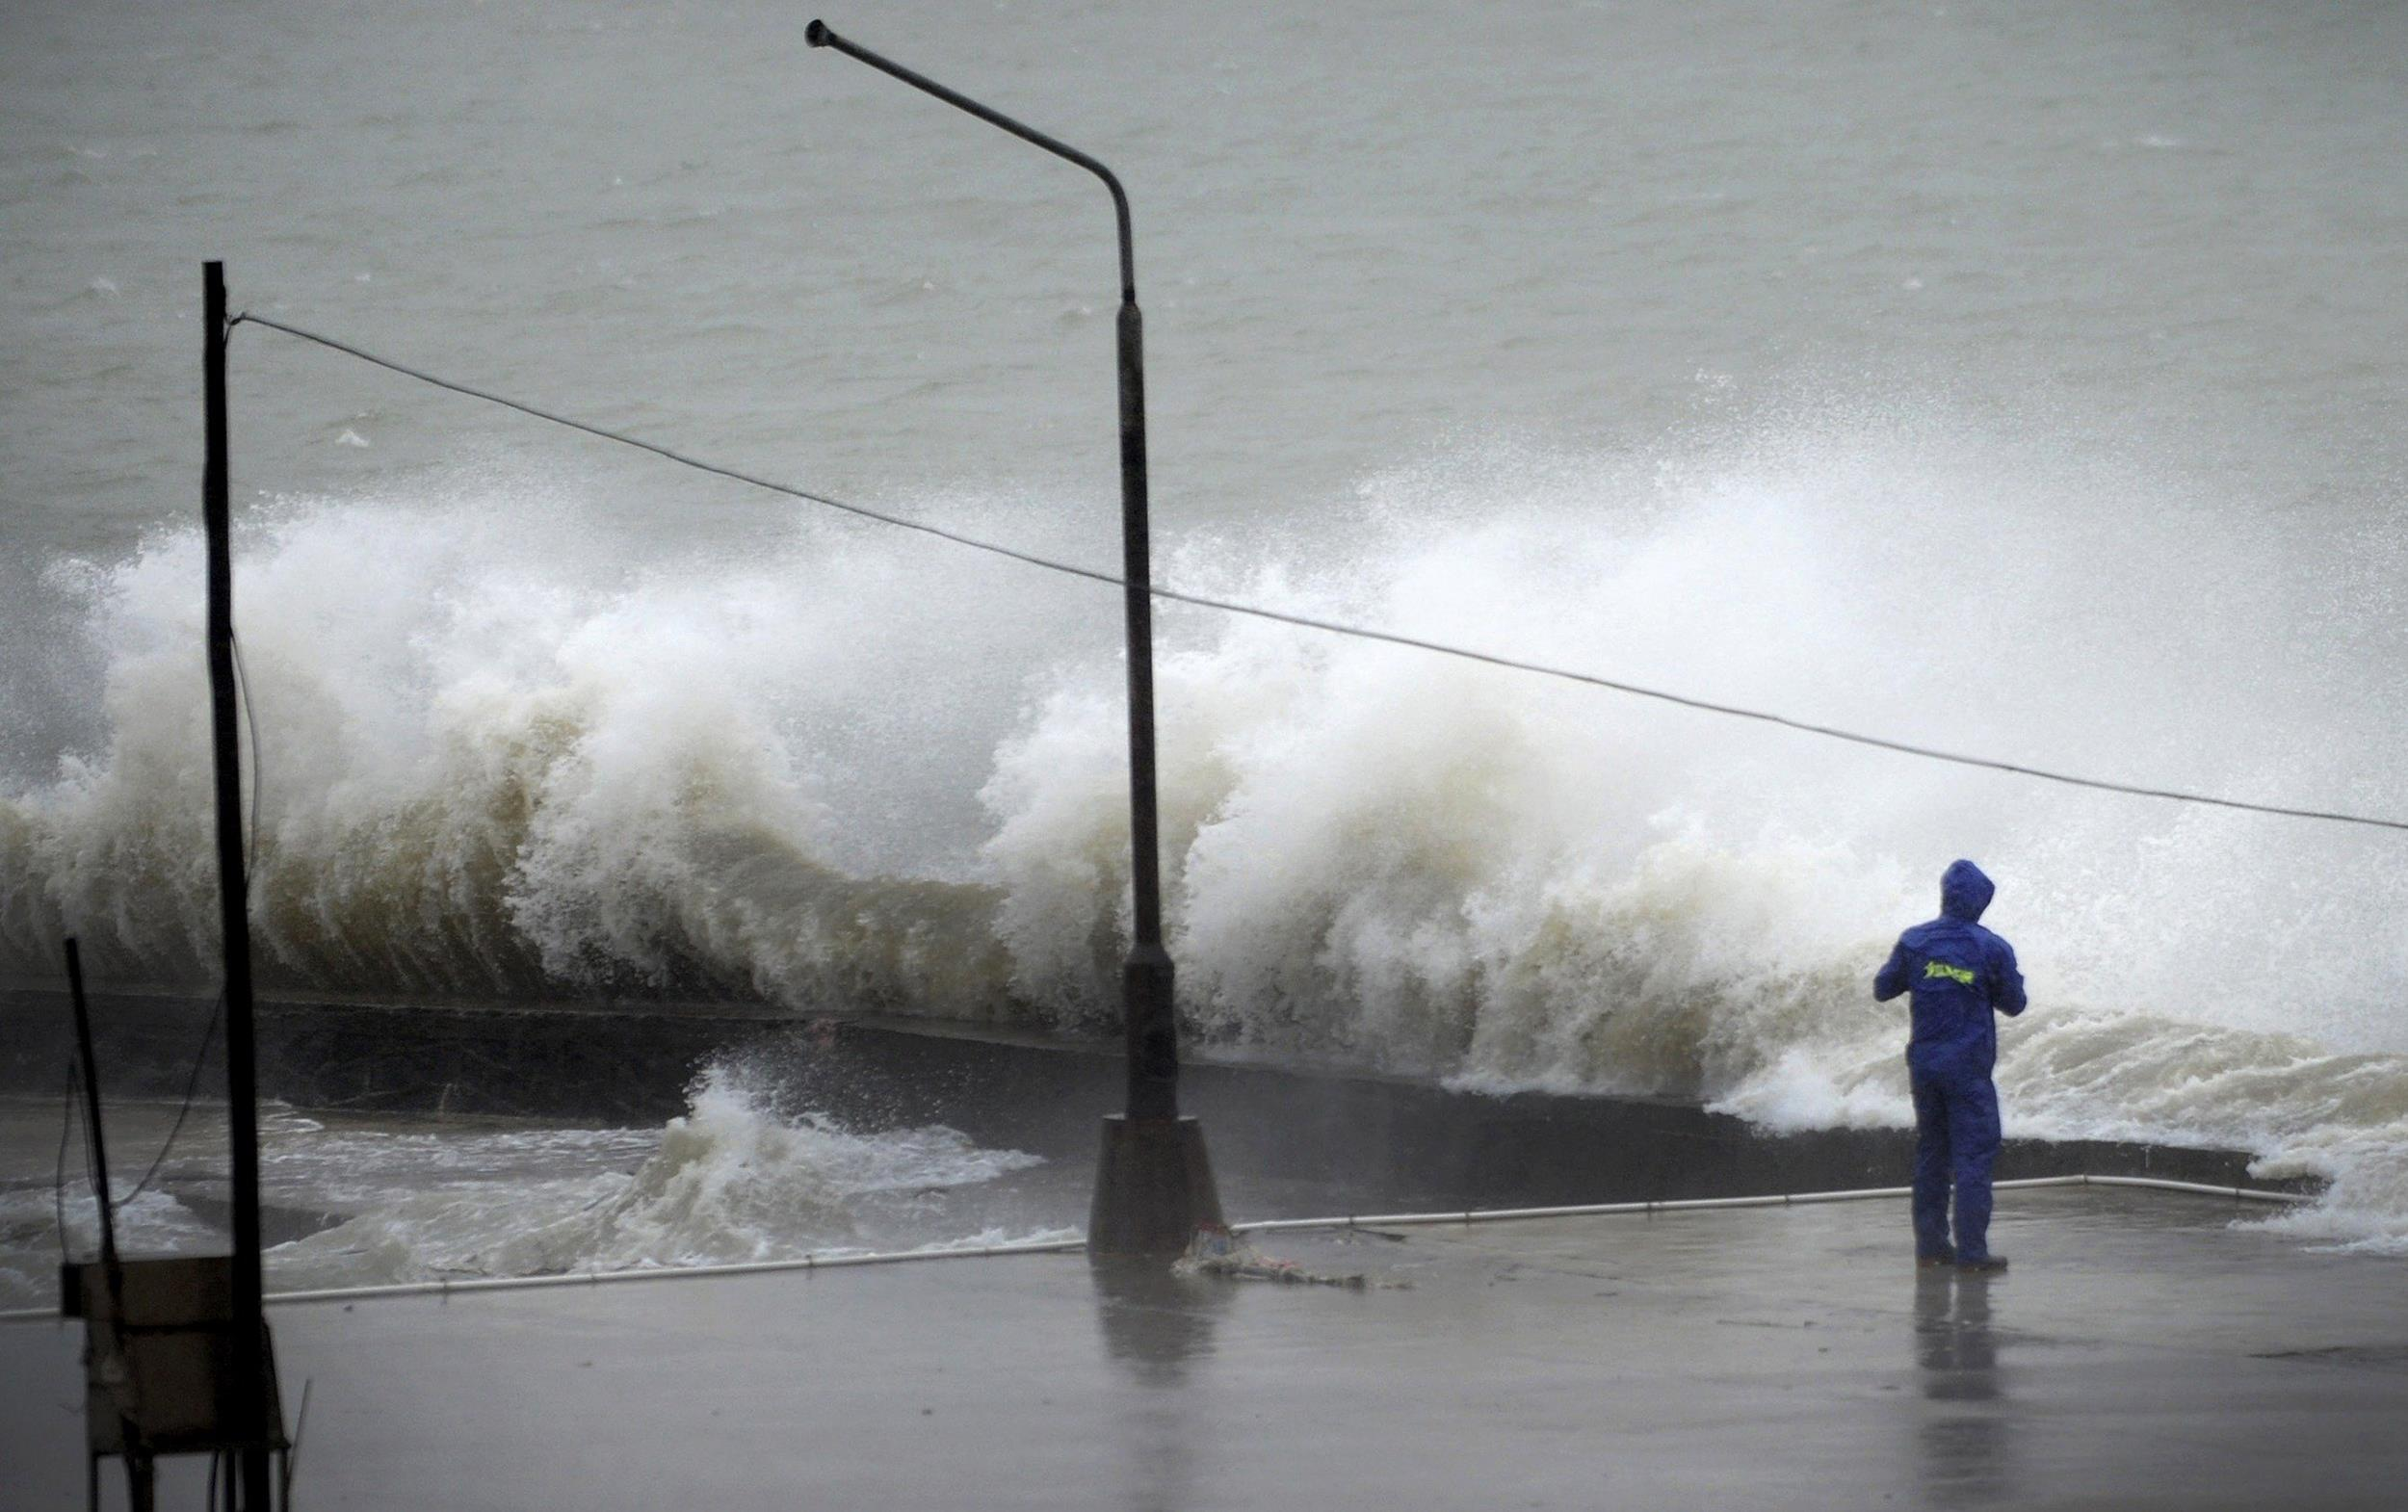 Image: A man looks on as a wave surges under the influence of Typhoon Rammasun at a port in Zhanjiang, Guangdong province